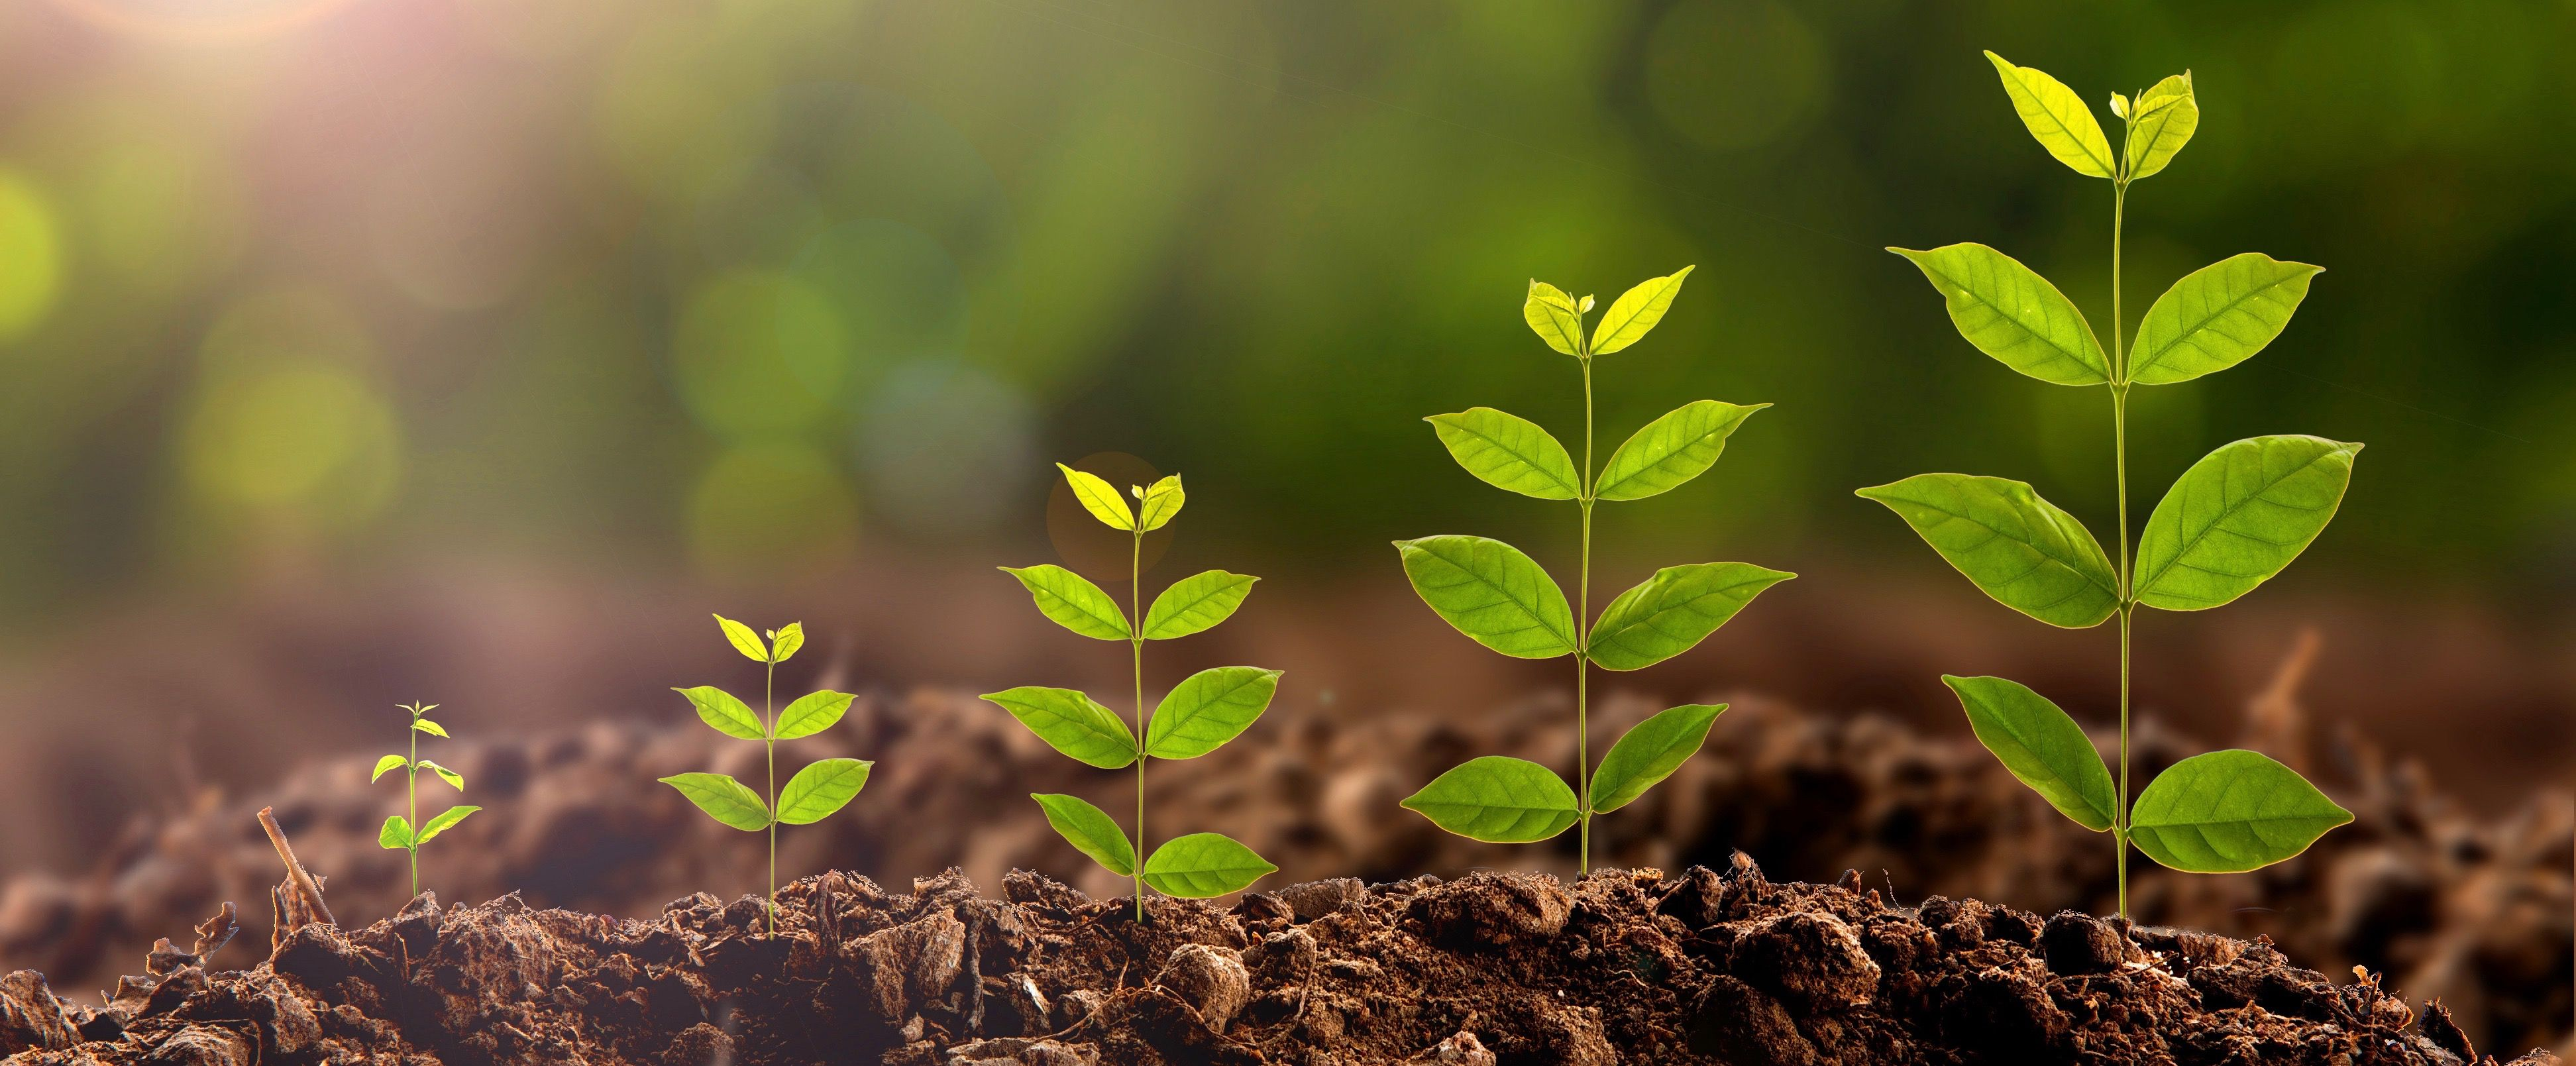 Growth Experts to Follow Plant Growth over time